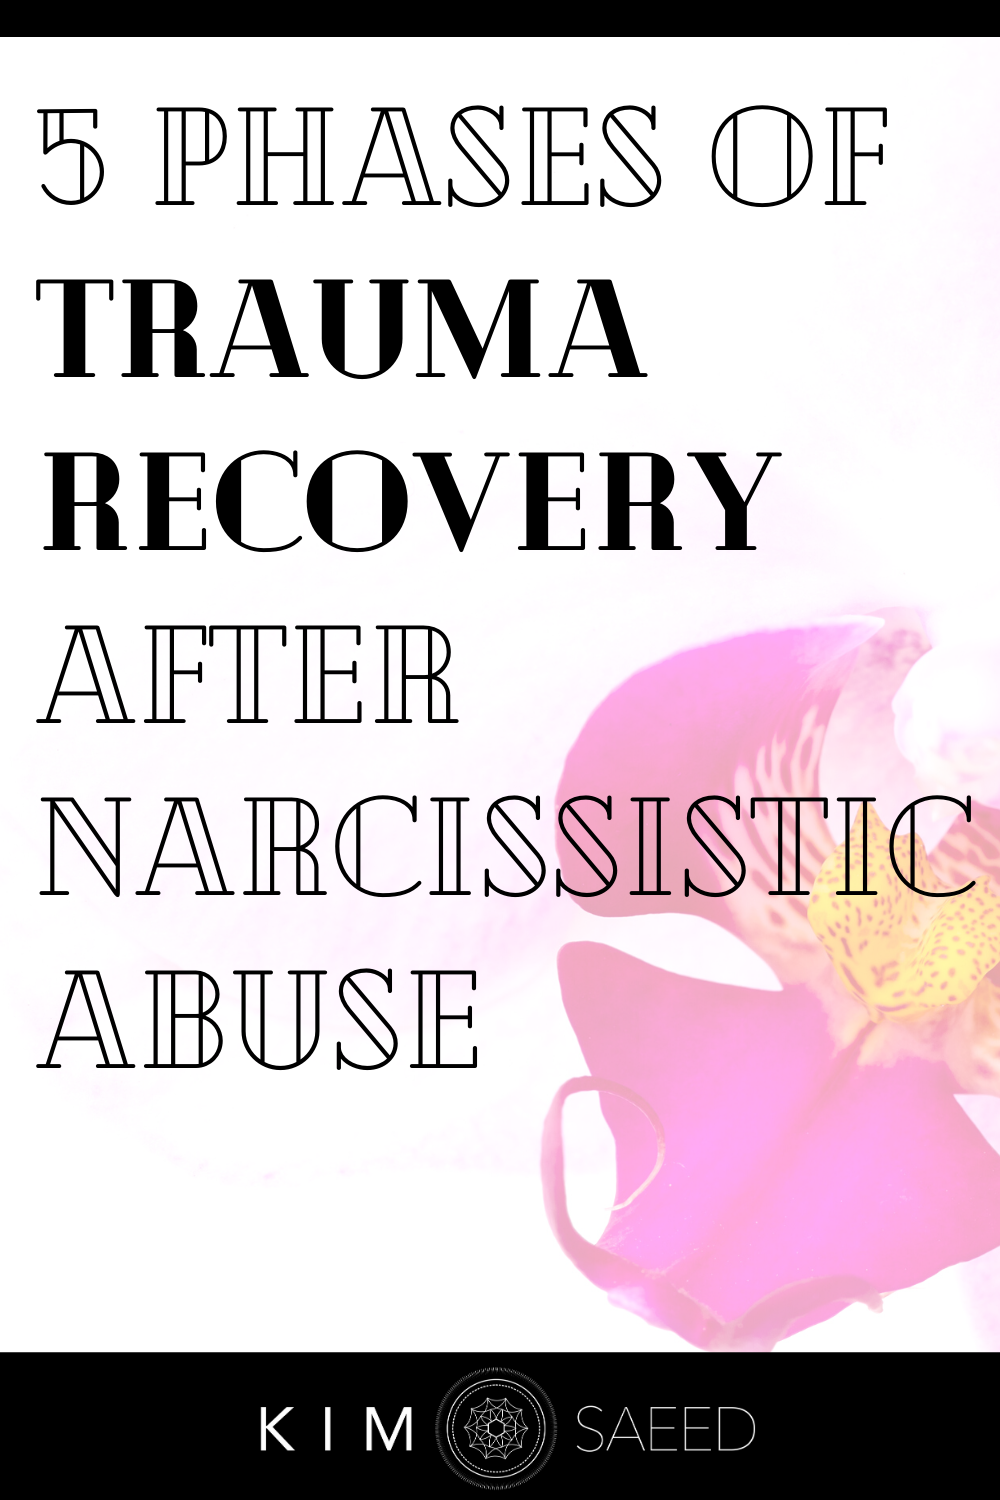 Working The 5 Phases of Trauma Recovery After Narc